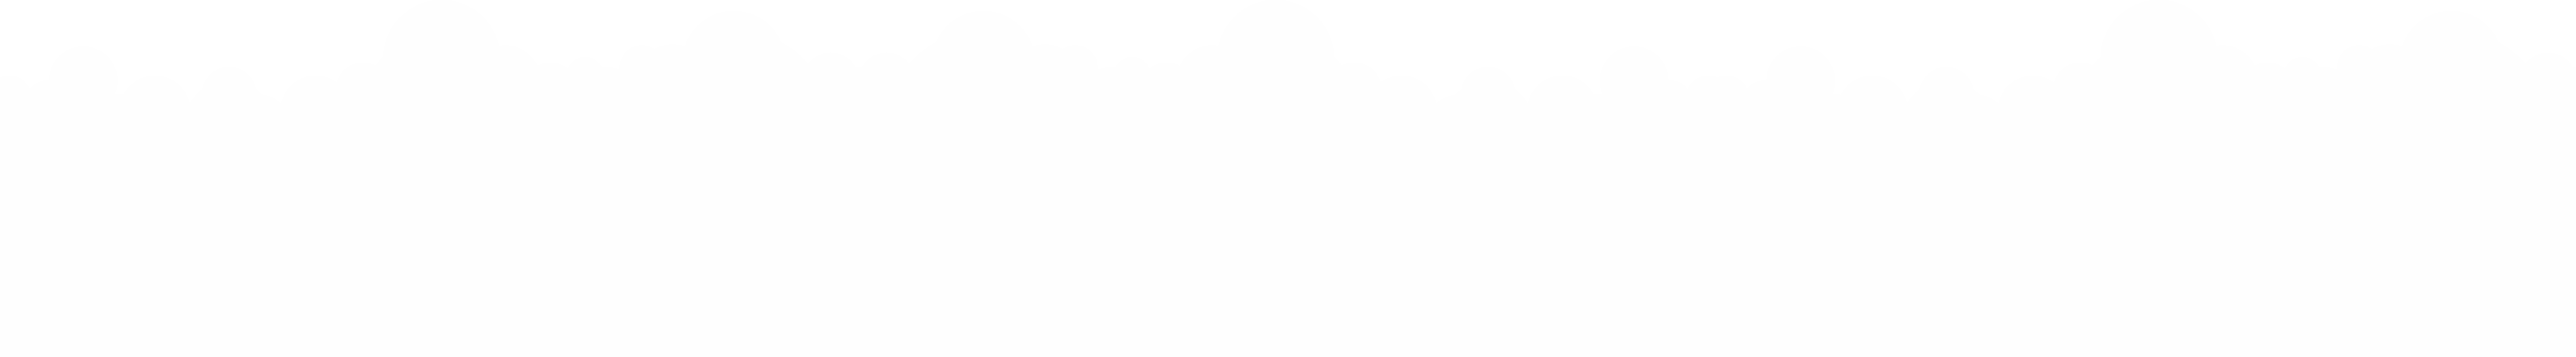 Cloud Background Layer 3